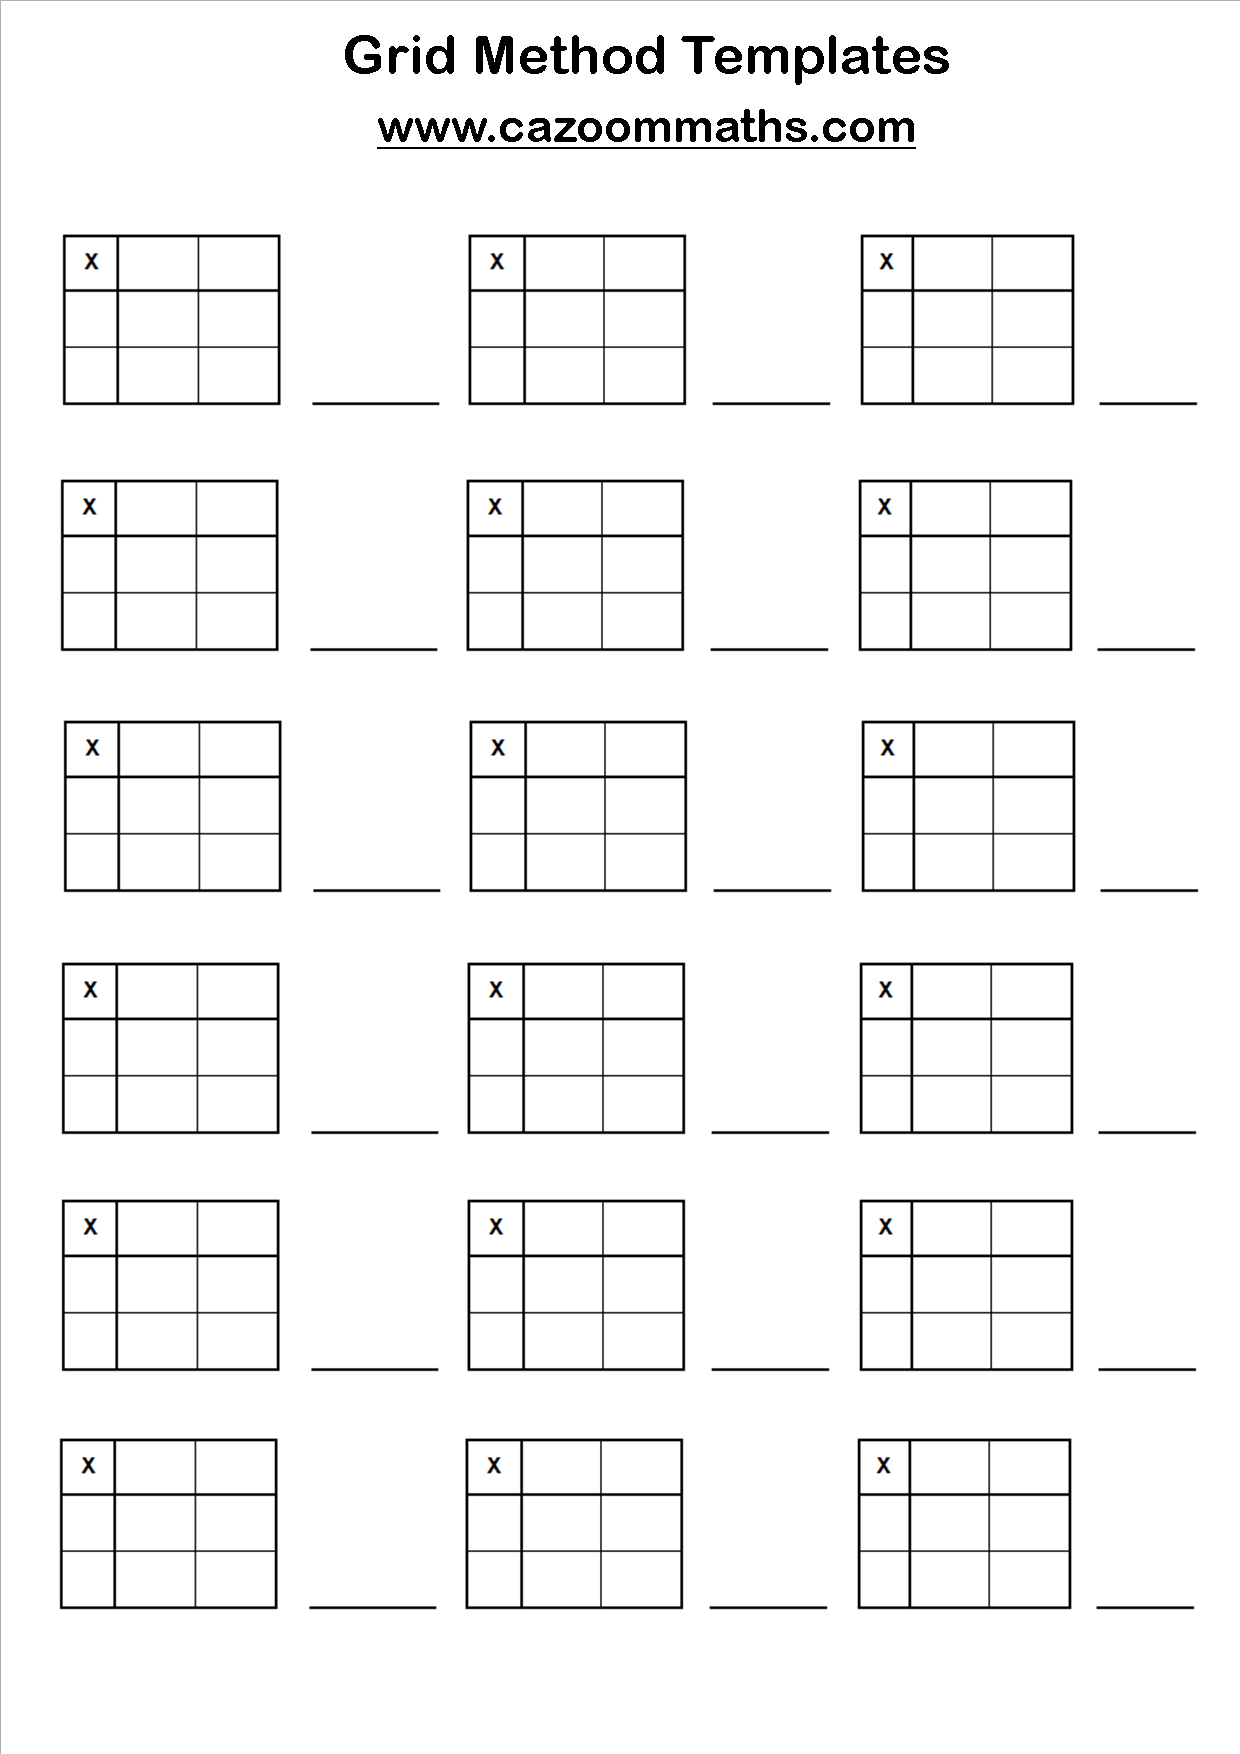 Postthumb Cazoom Maths Worksheets Postthumb Best Free Printable Worksheets